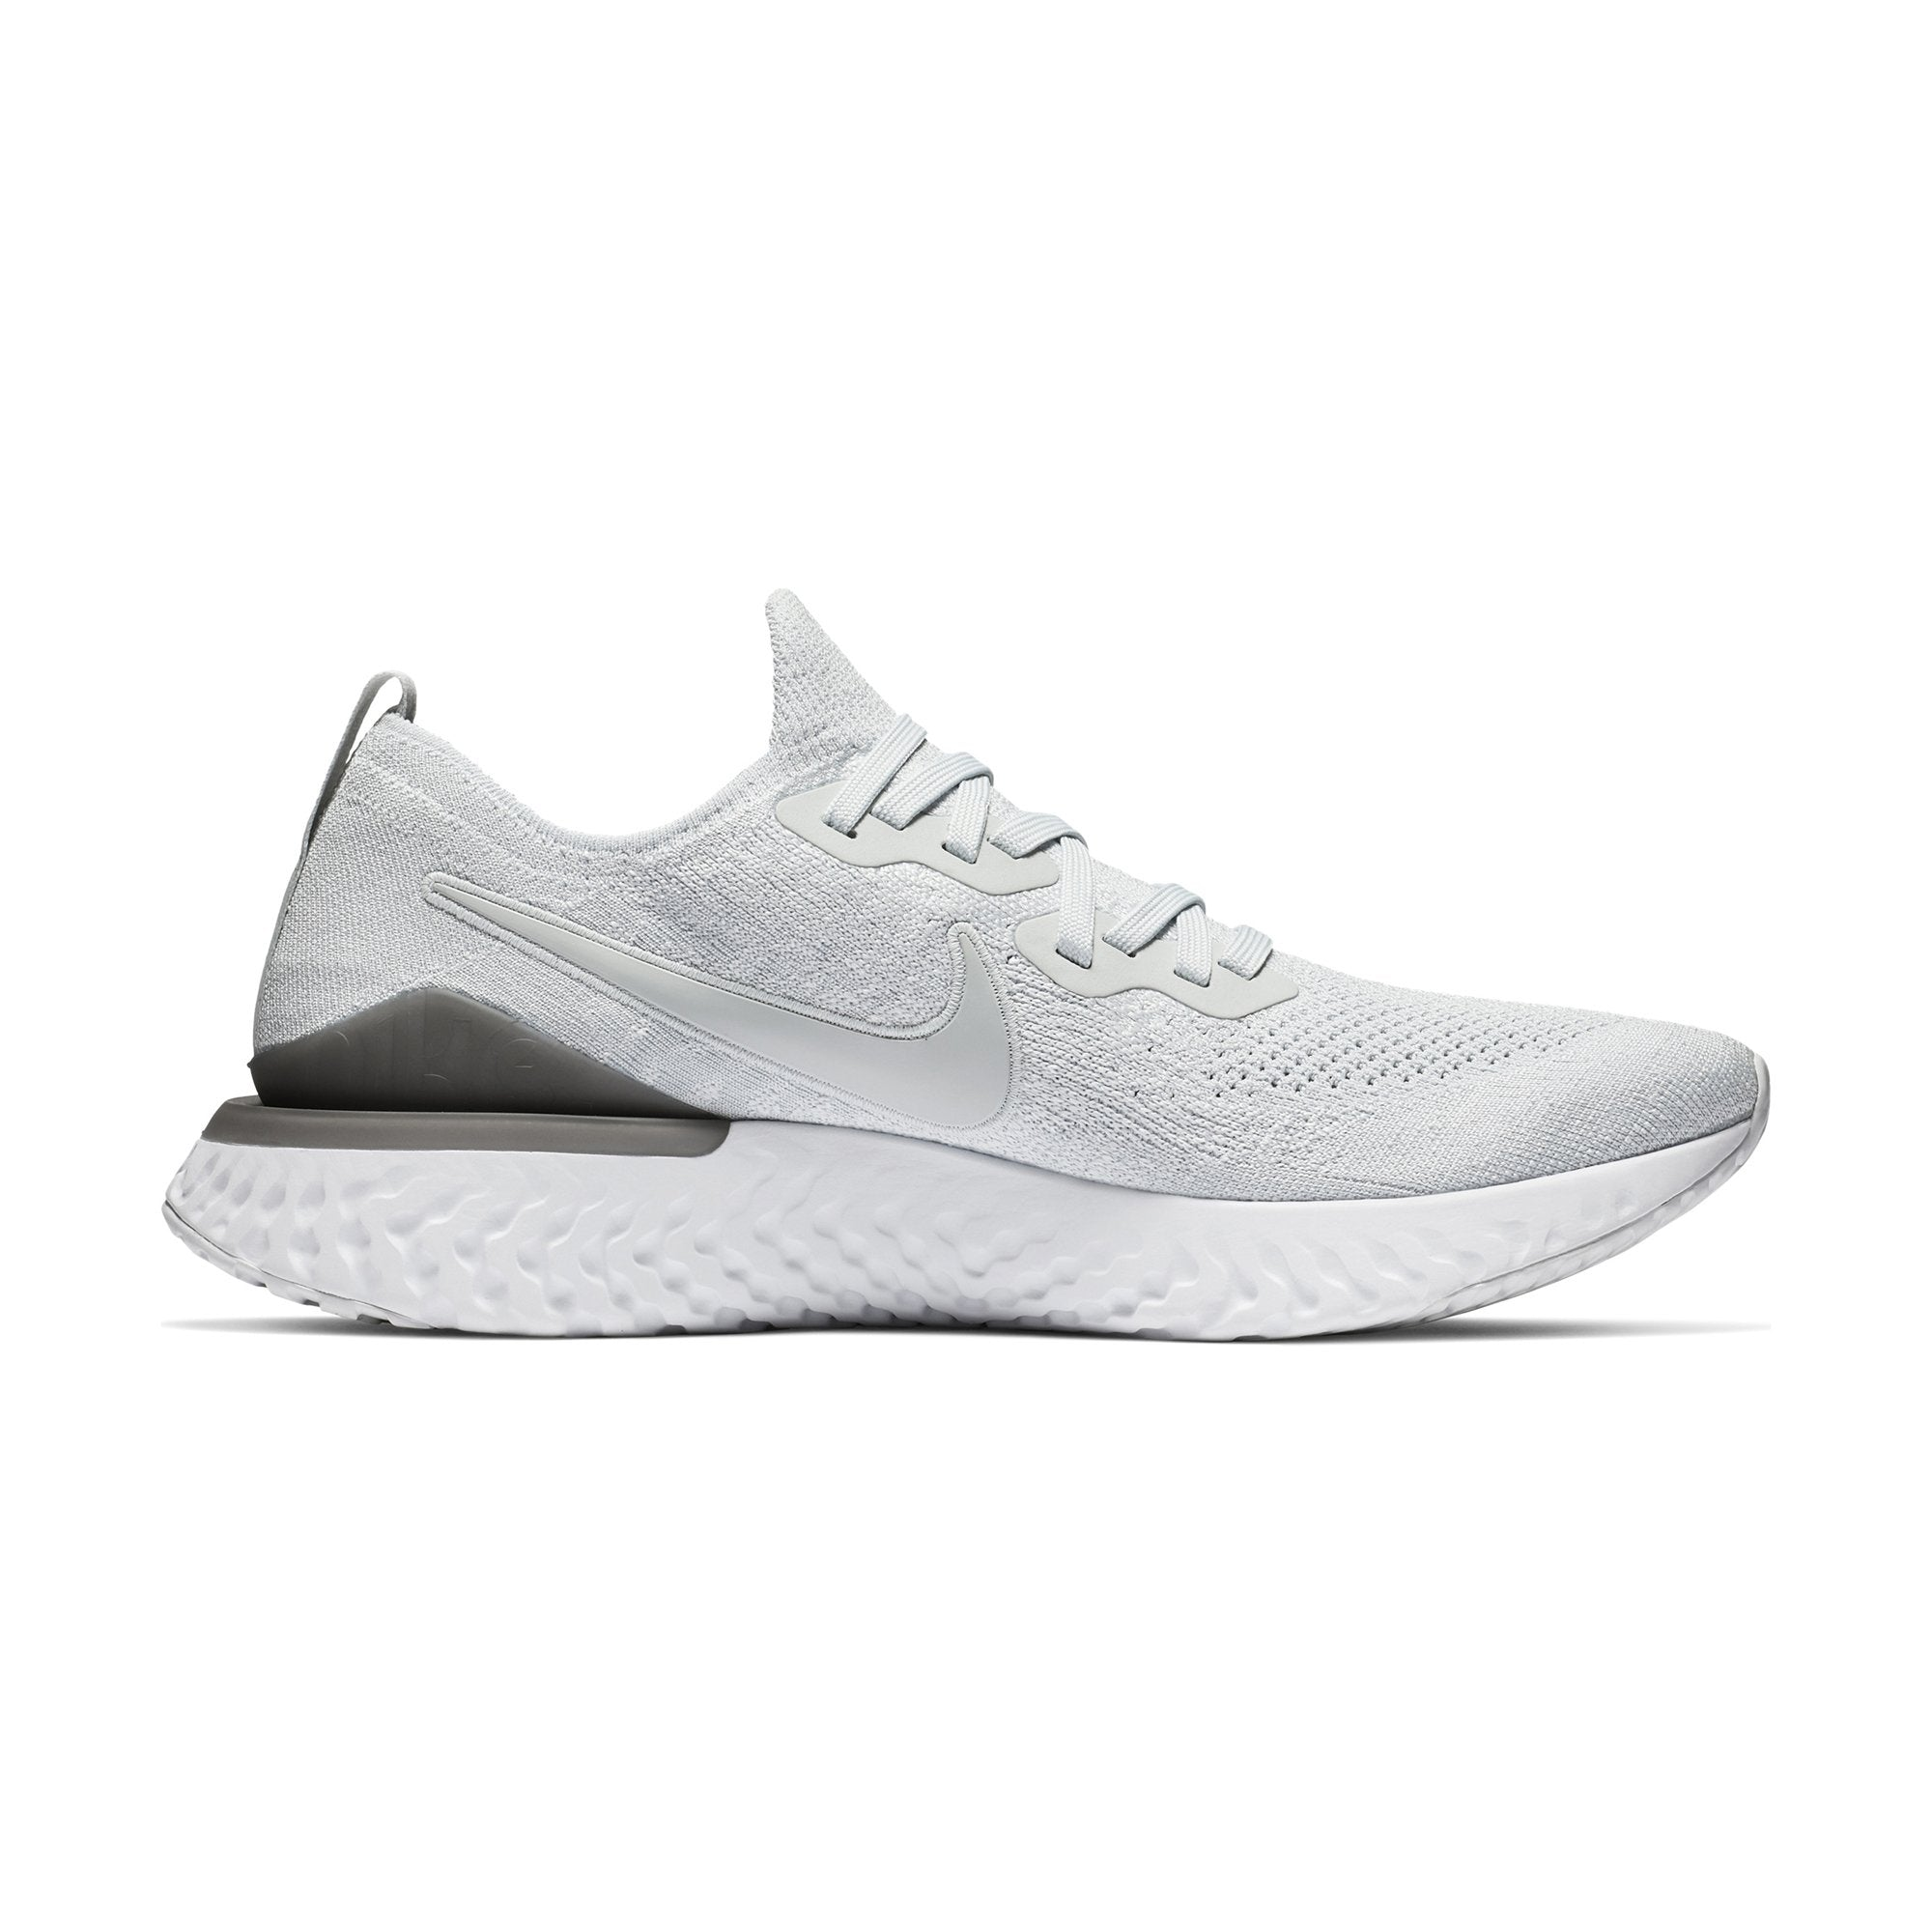 online store 96c55 4bf08 Buy Nike Men Epic React Flyknit 2 Running Shoes, Pure Platinum Gunsmoke  Online in Singapore   Royal Sporting House